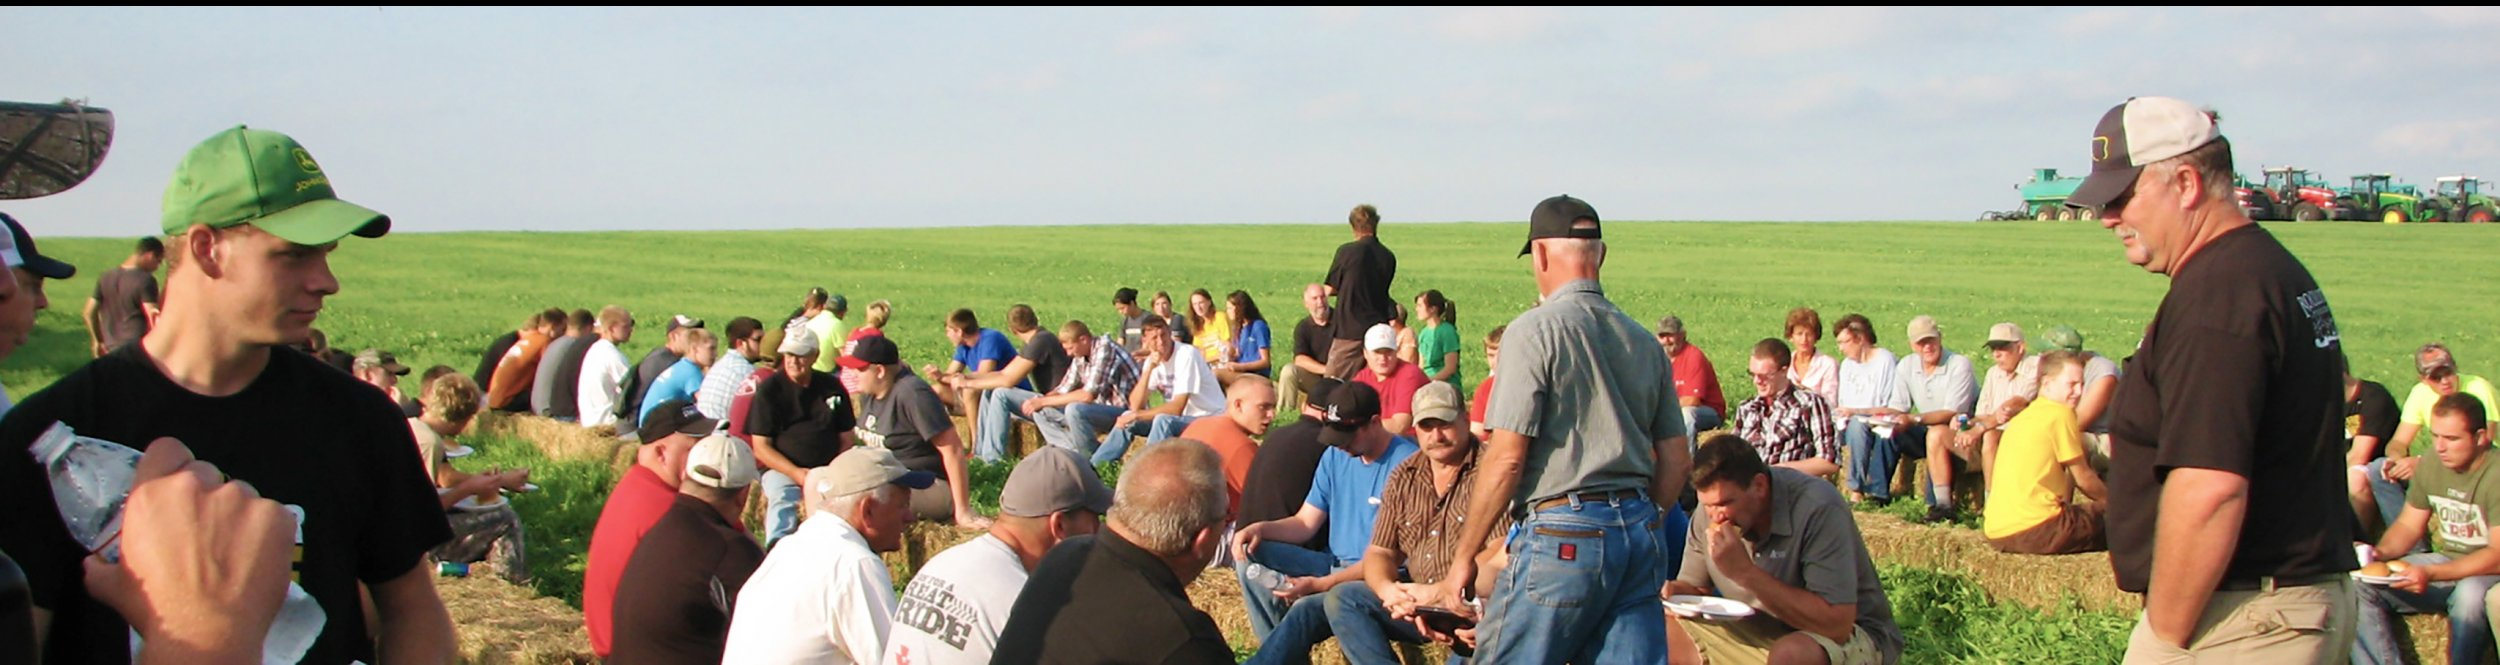 A group of people gathers in the fields.